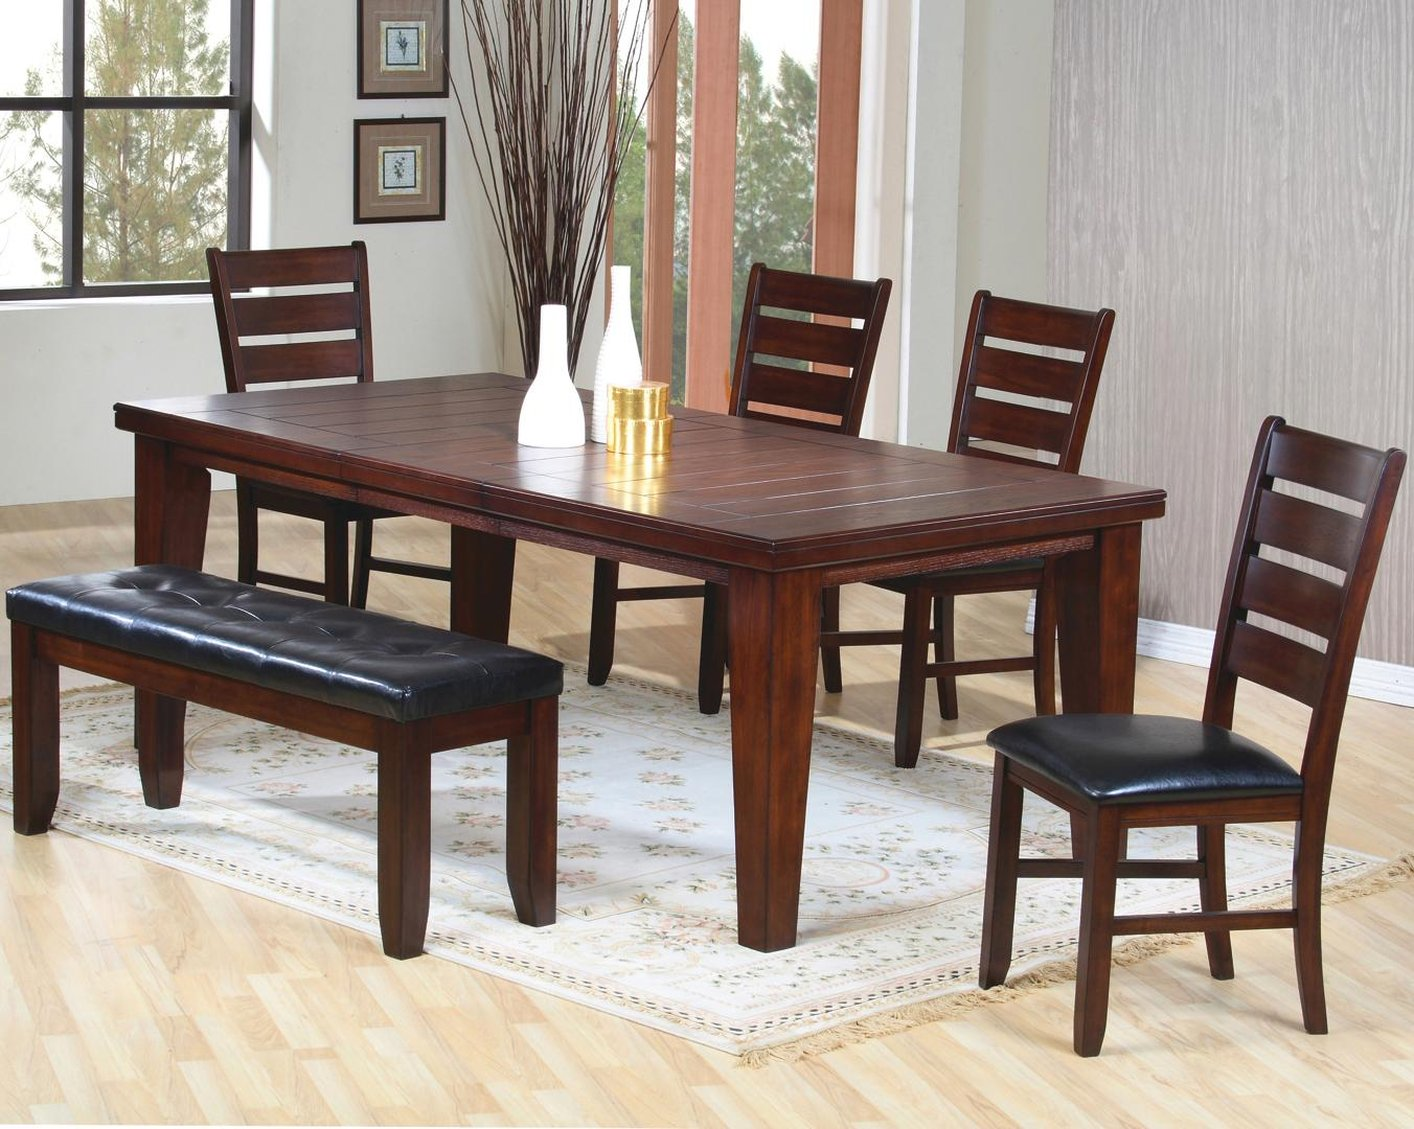 Wooden Dining Room Chairs Amazing Bedroom Living Room